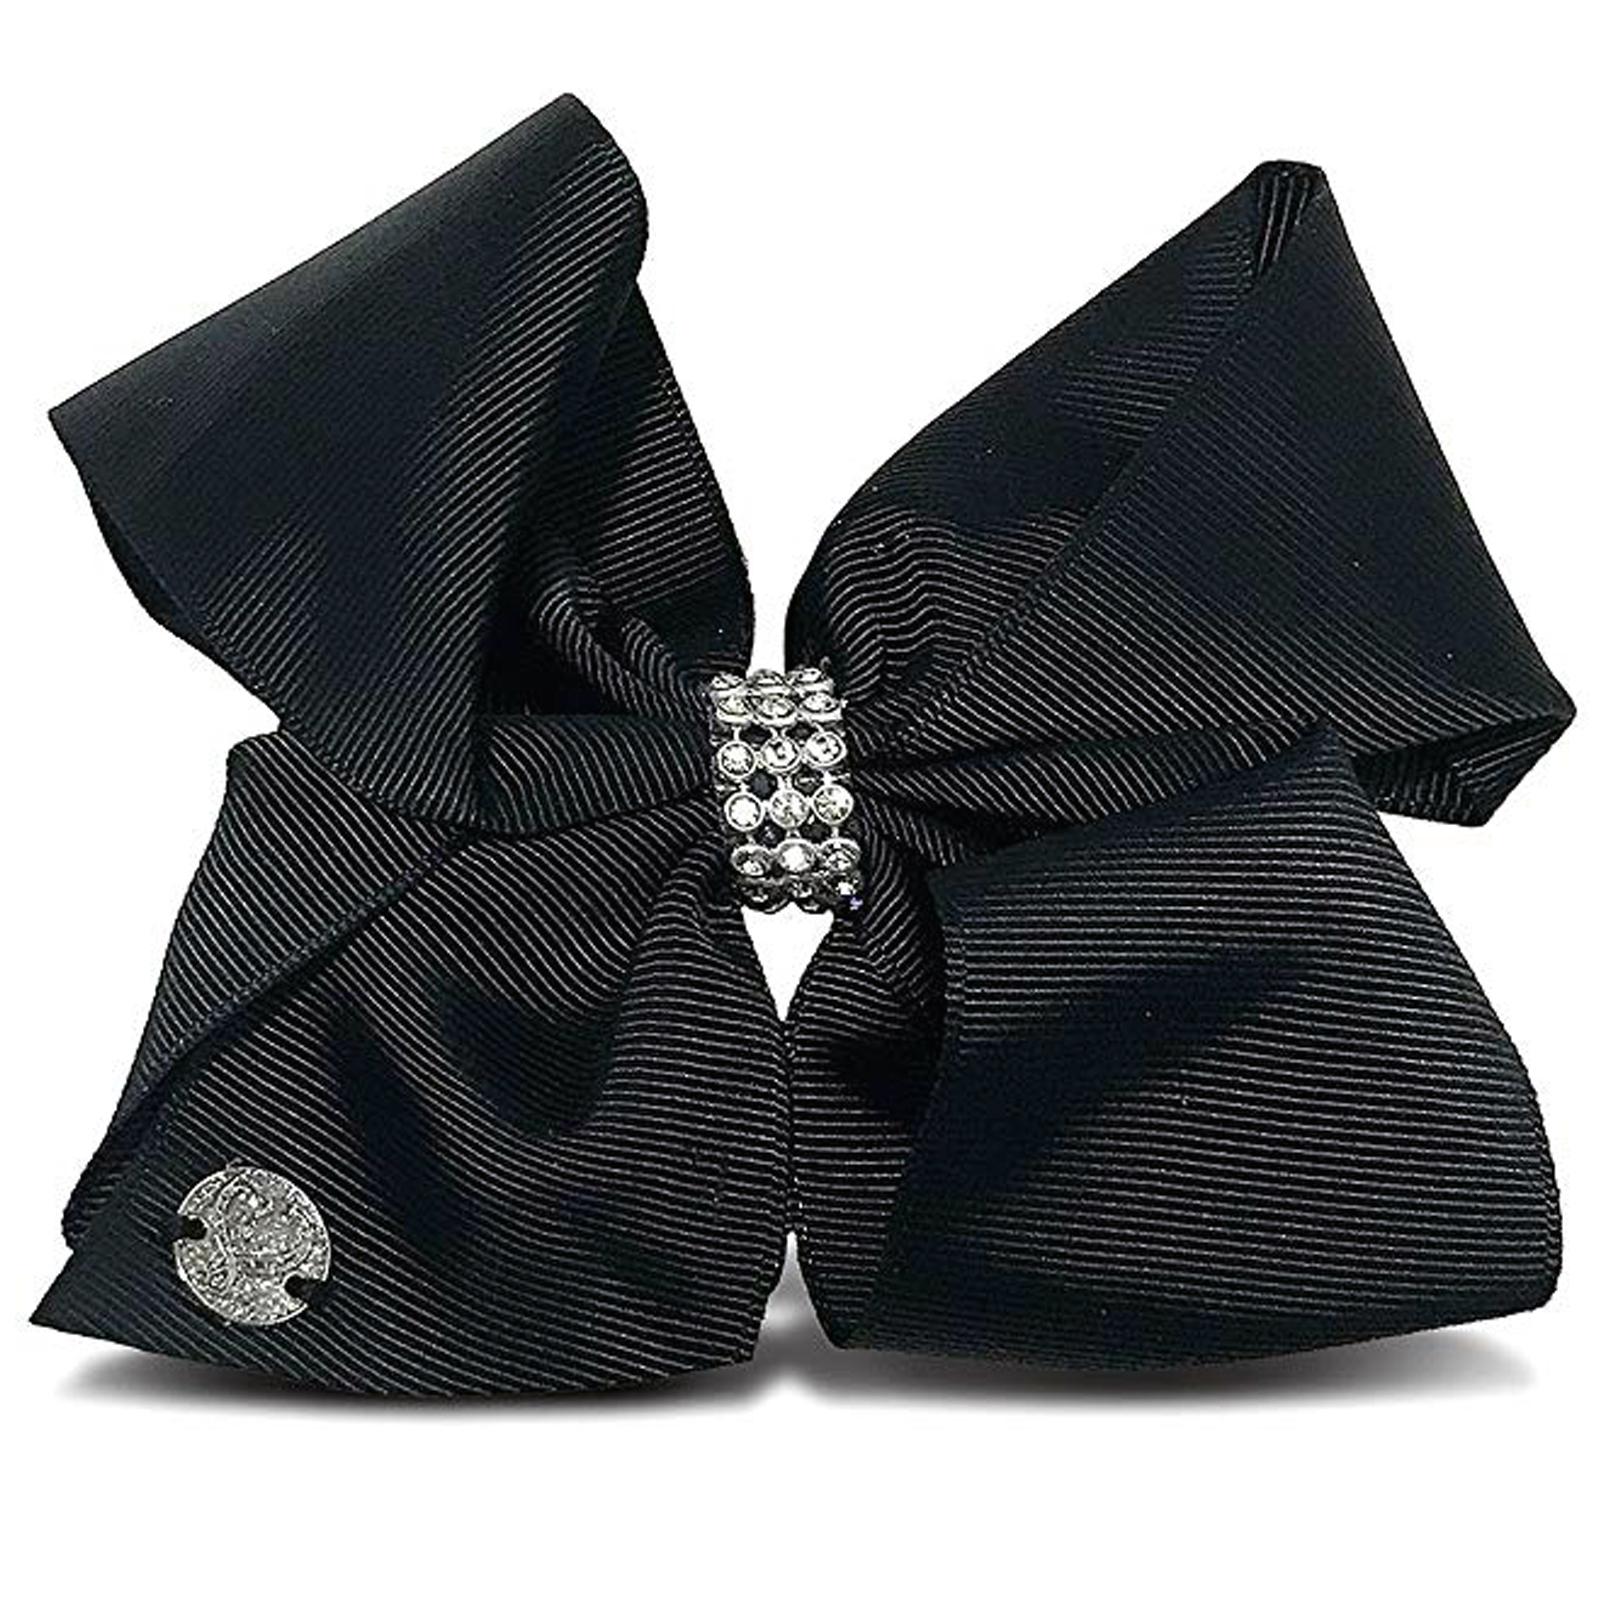 Nickelodeon JoJo Siwa Girls Hair Clip Style Bow Black with Rhinestones Accessory